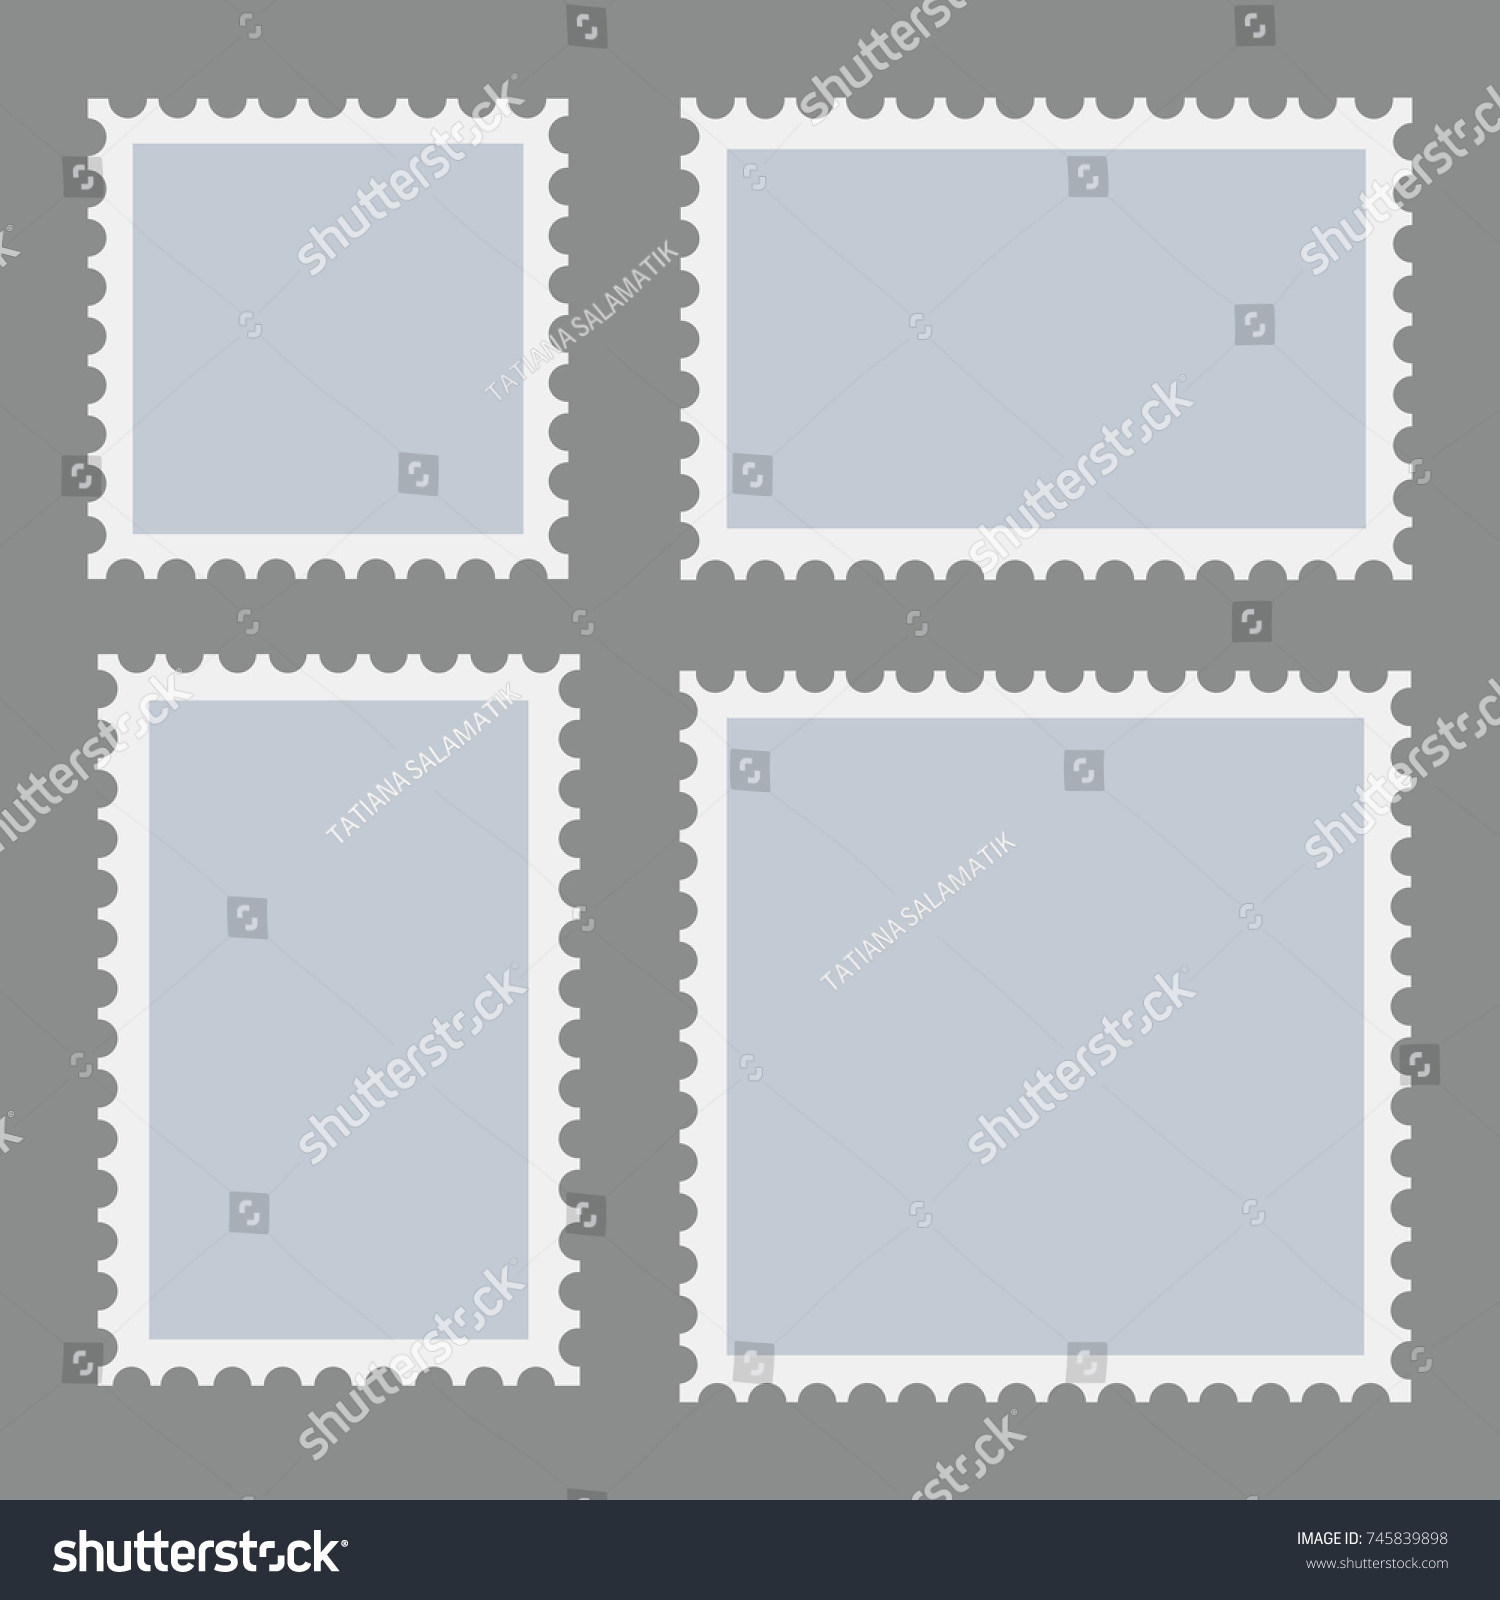 Blank Postage Stamps Template Set On Stock Vector (Royalty Free ...